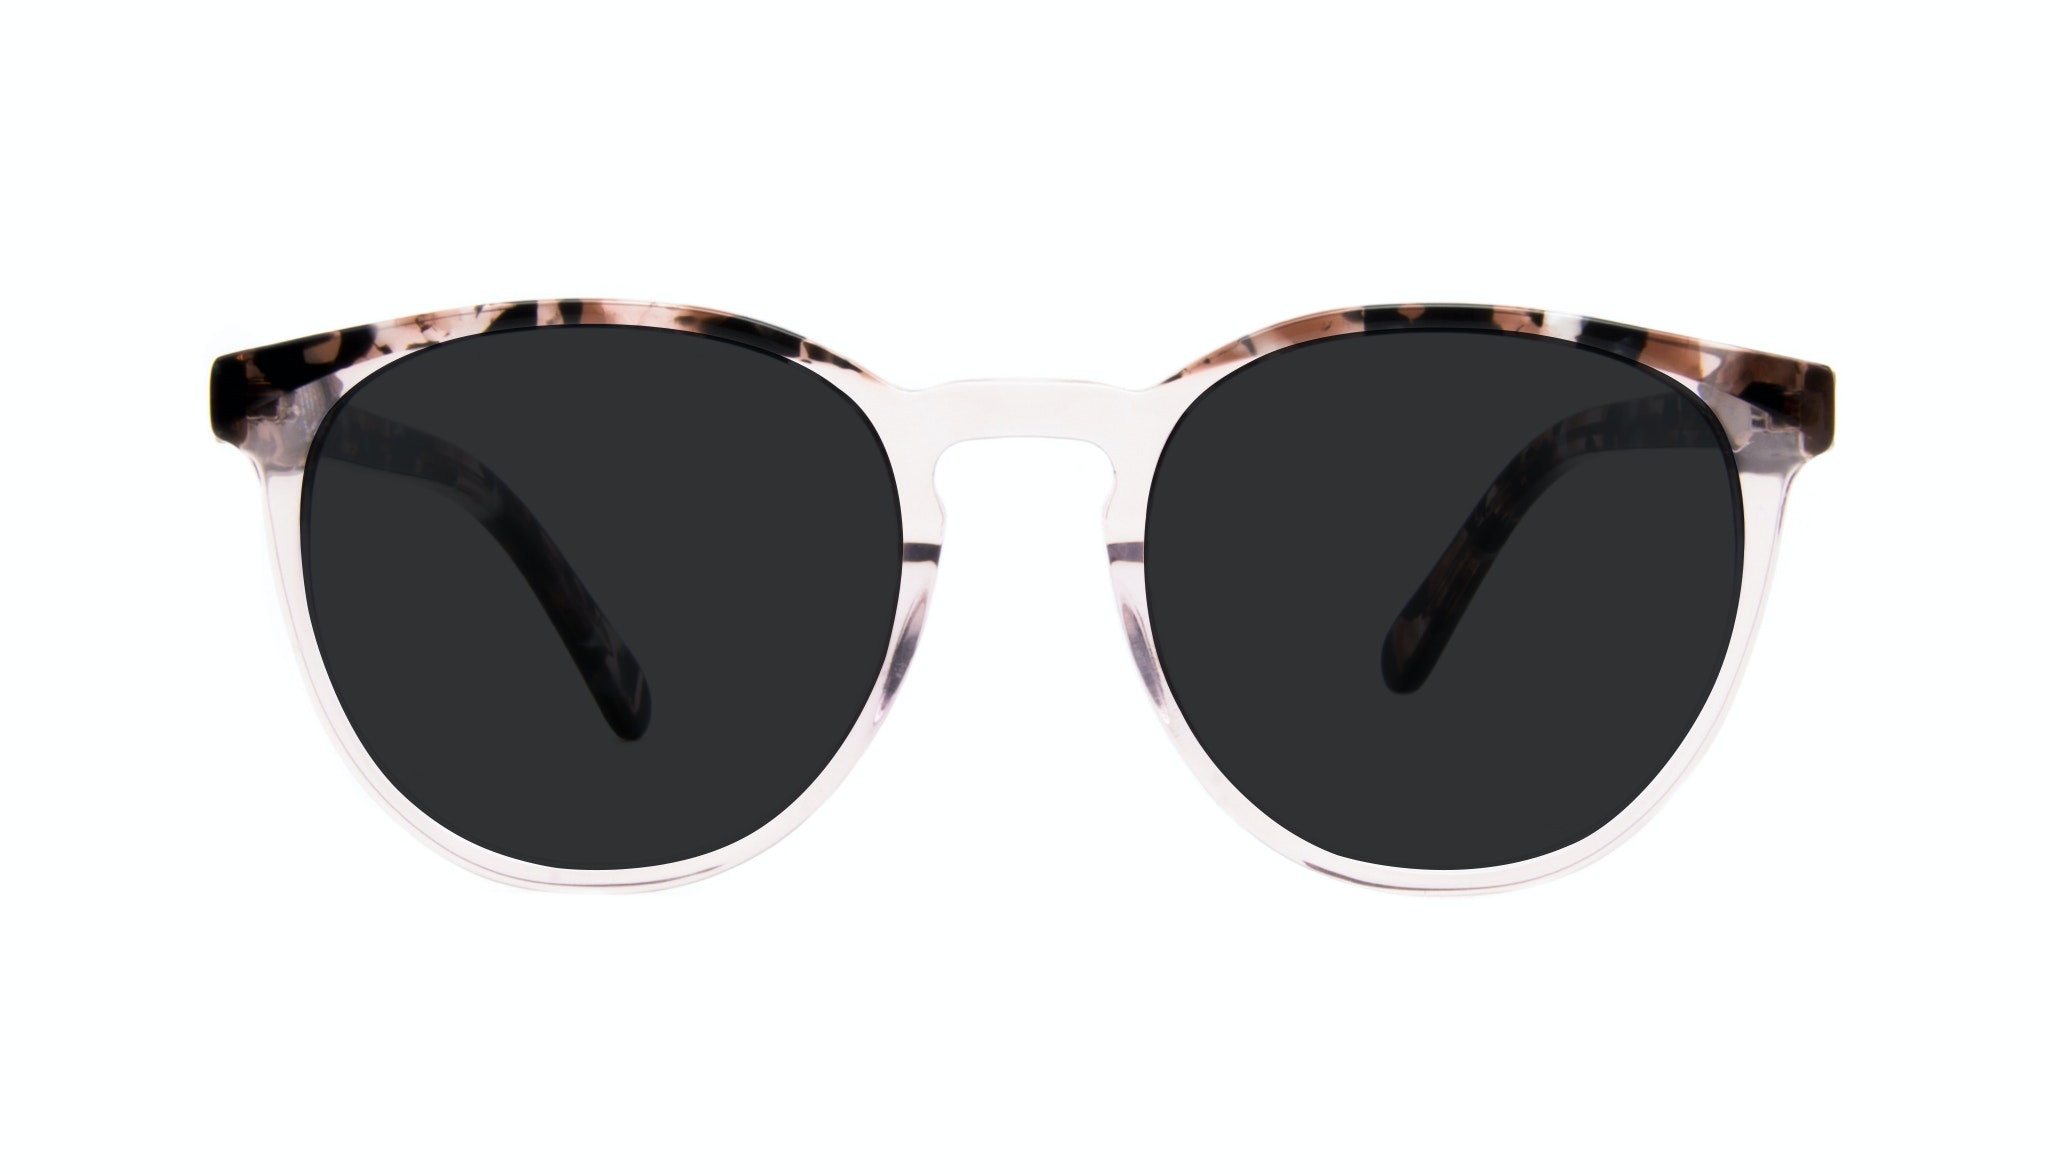 Affordable Fashion Glasses Round Sunglasses Women Brilliant Rose Tort Front